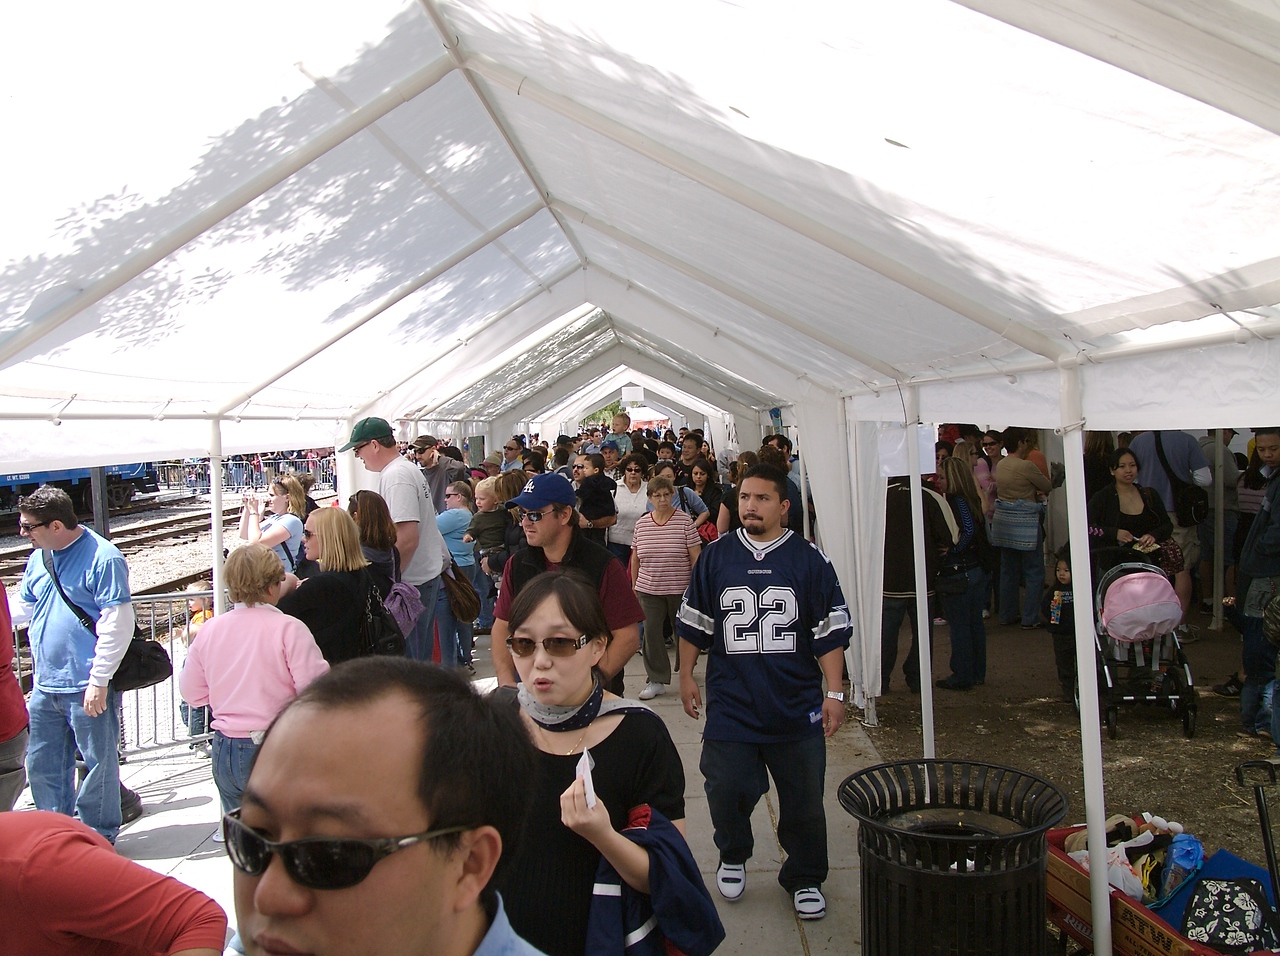 Here is the crowd that we had to walk through.